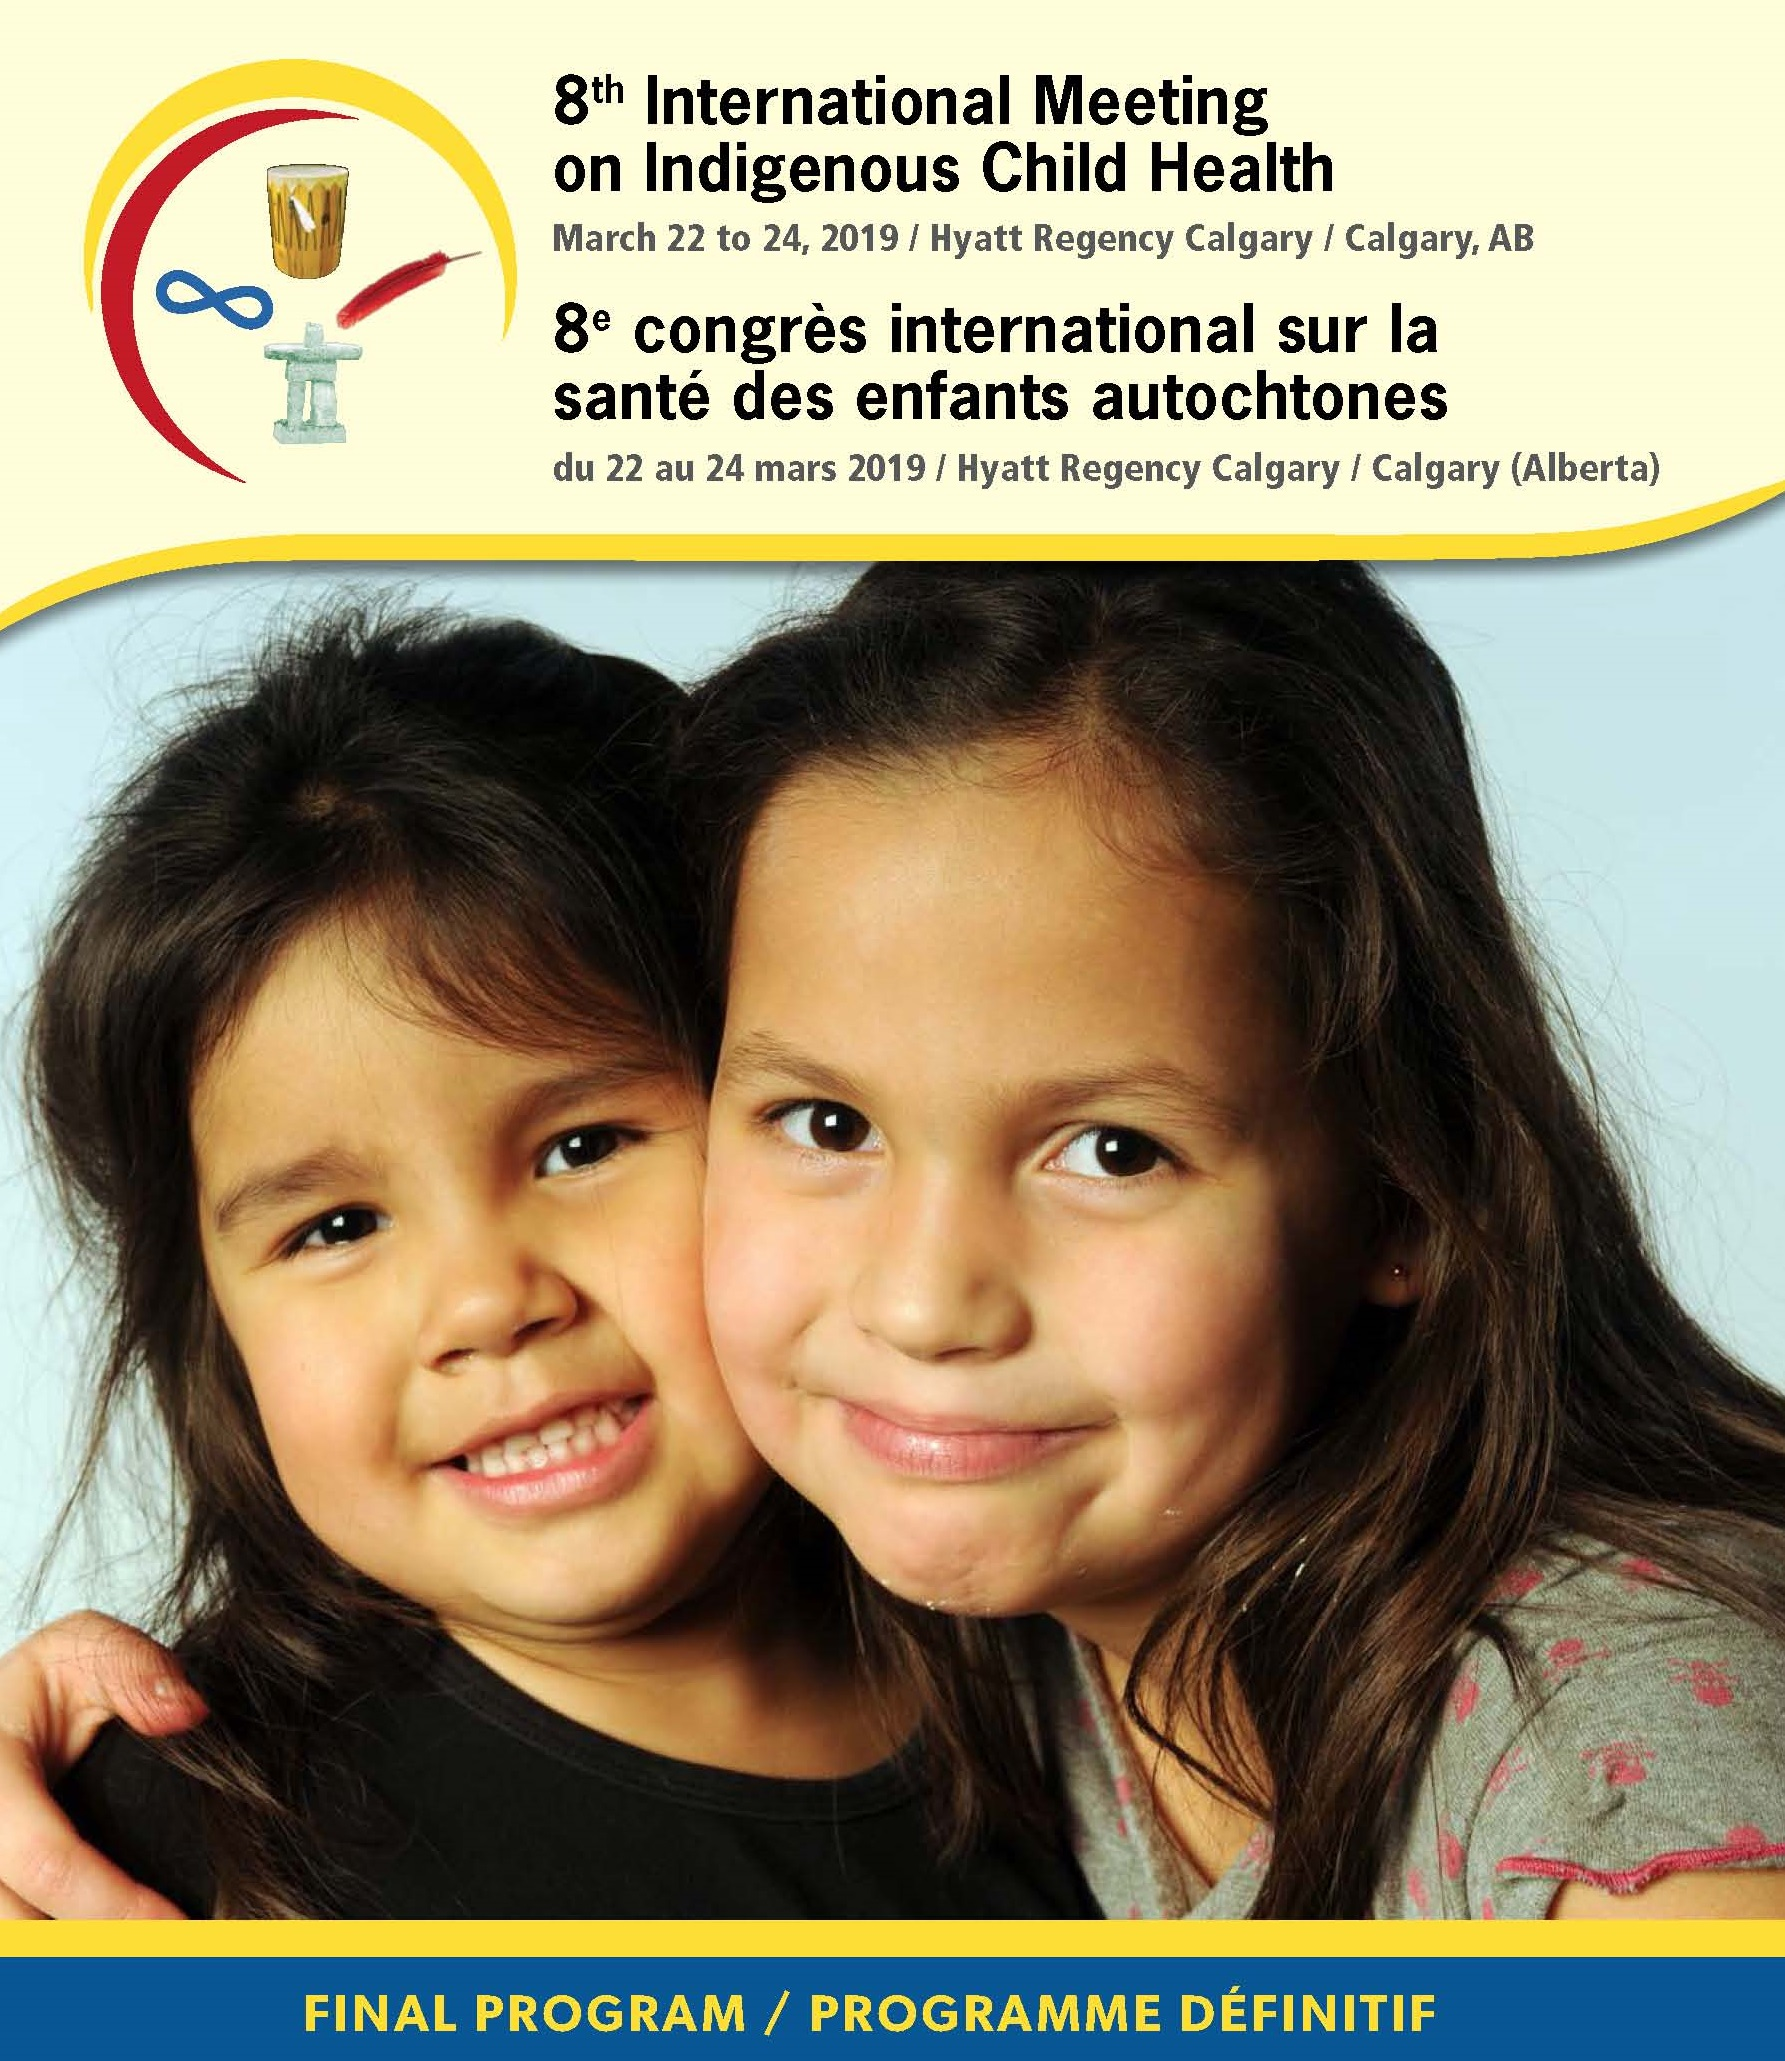 International Meeting on Indigenous Child Health | Canadian